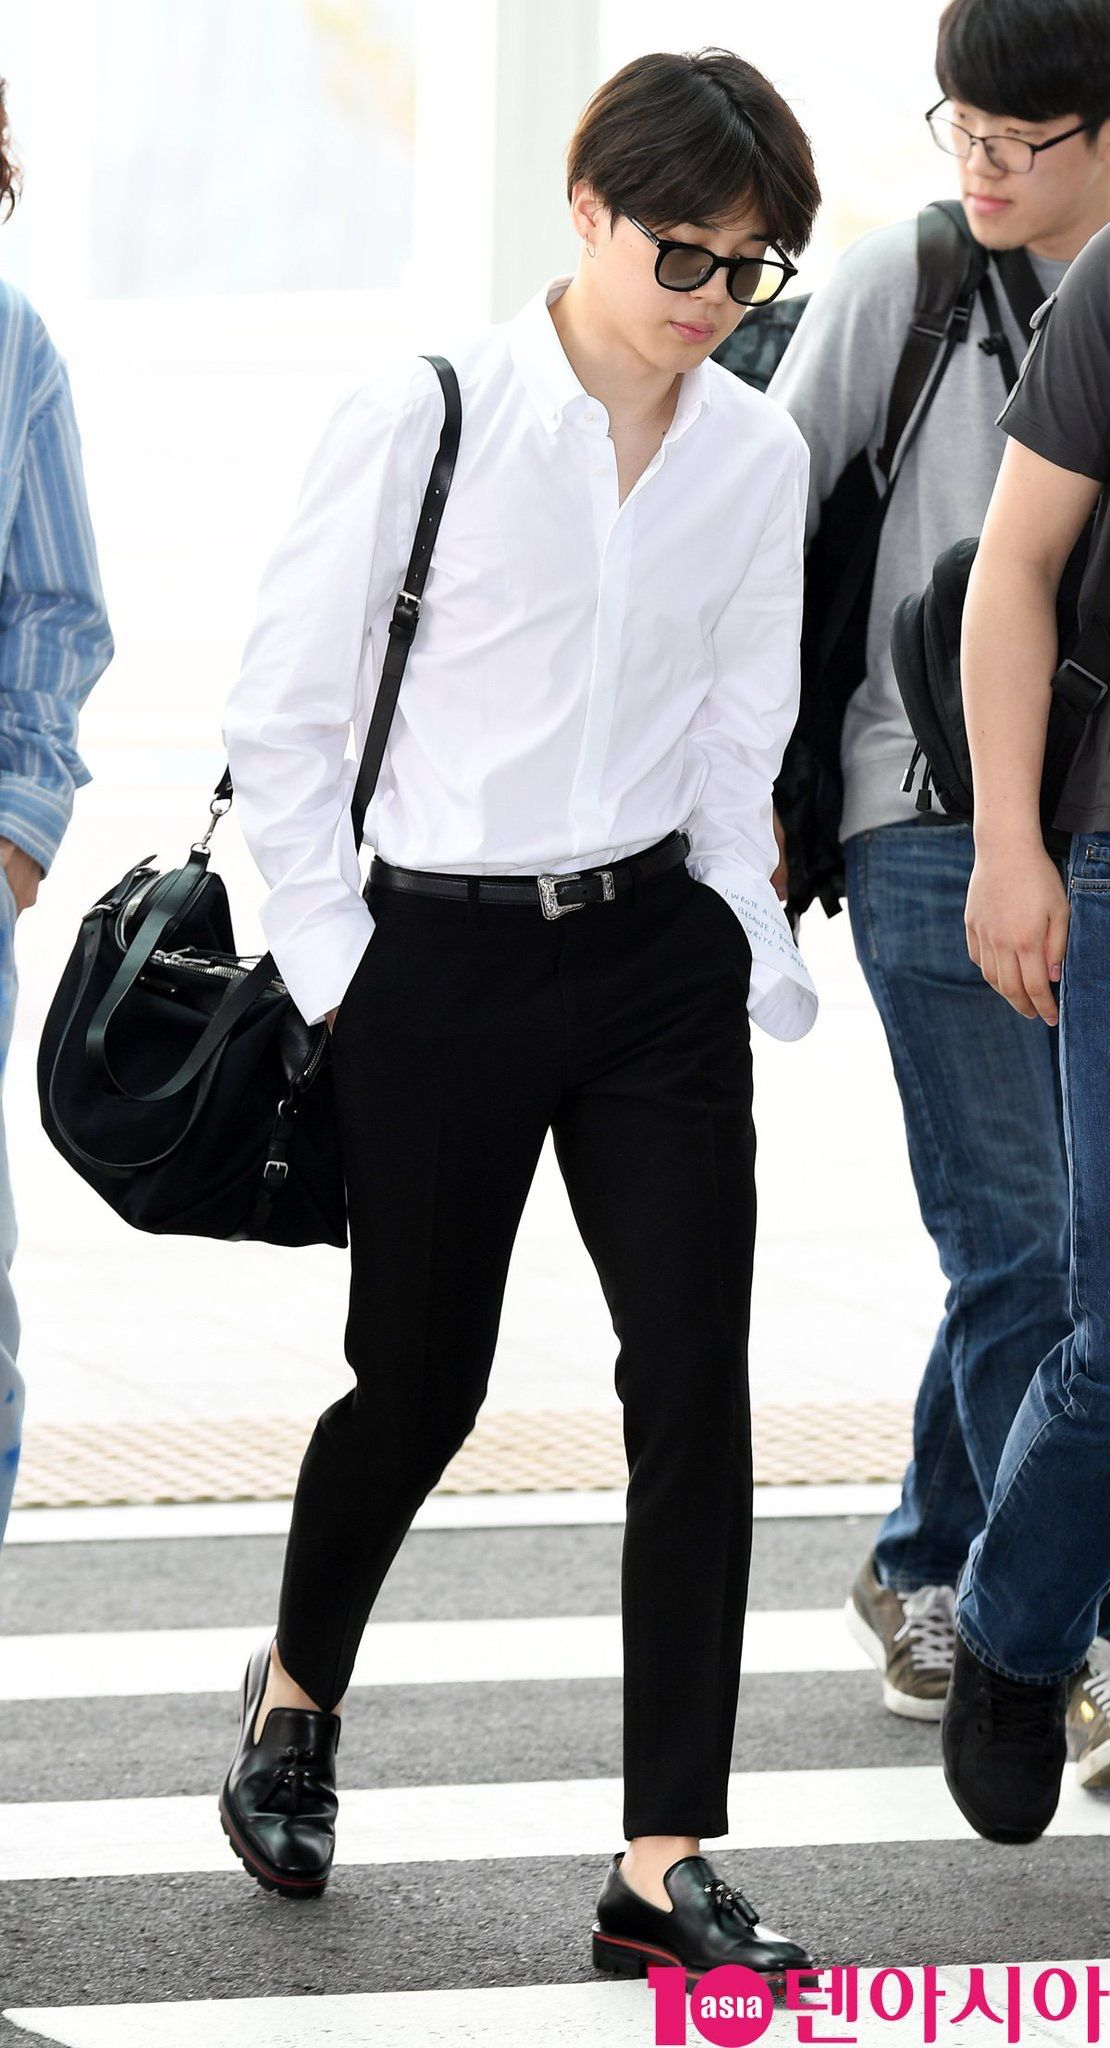 BTS Jimin (May 14th, 2018) Incheon Airport fashion (With images) | Jimin ...